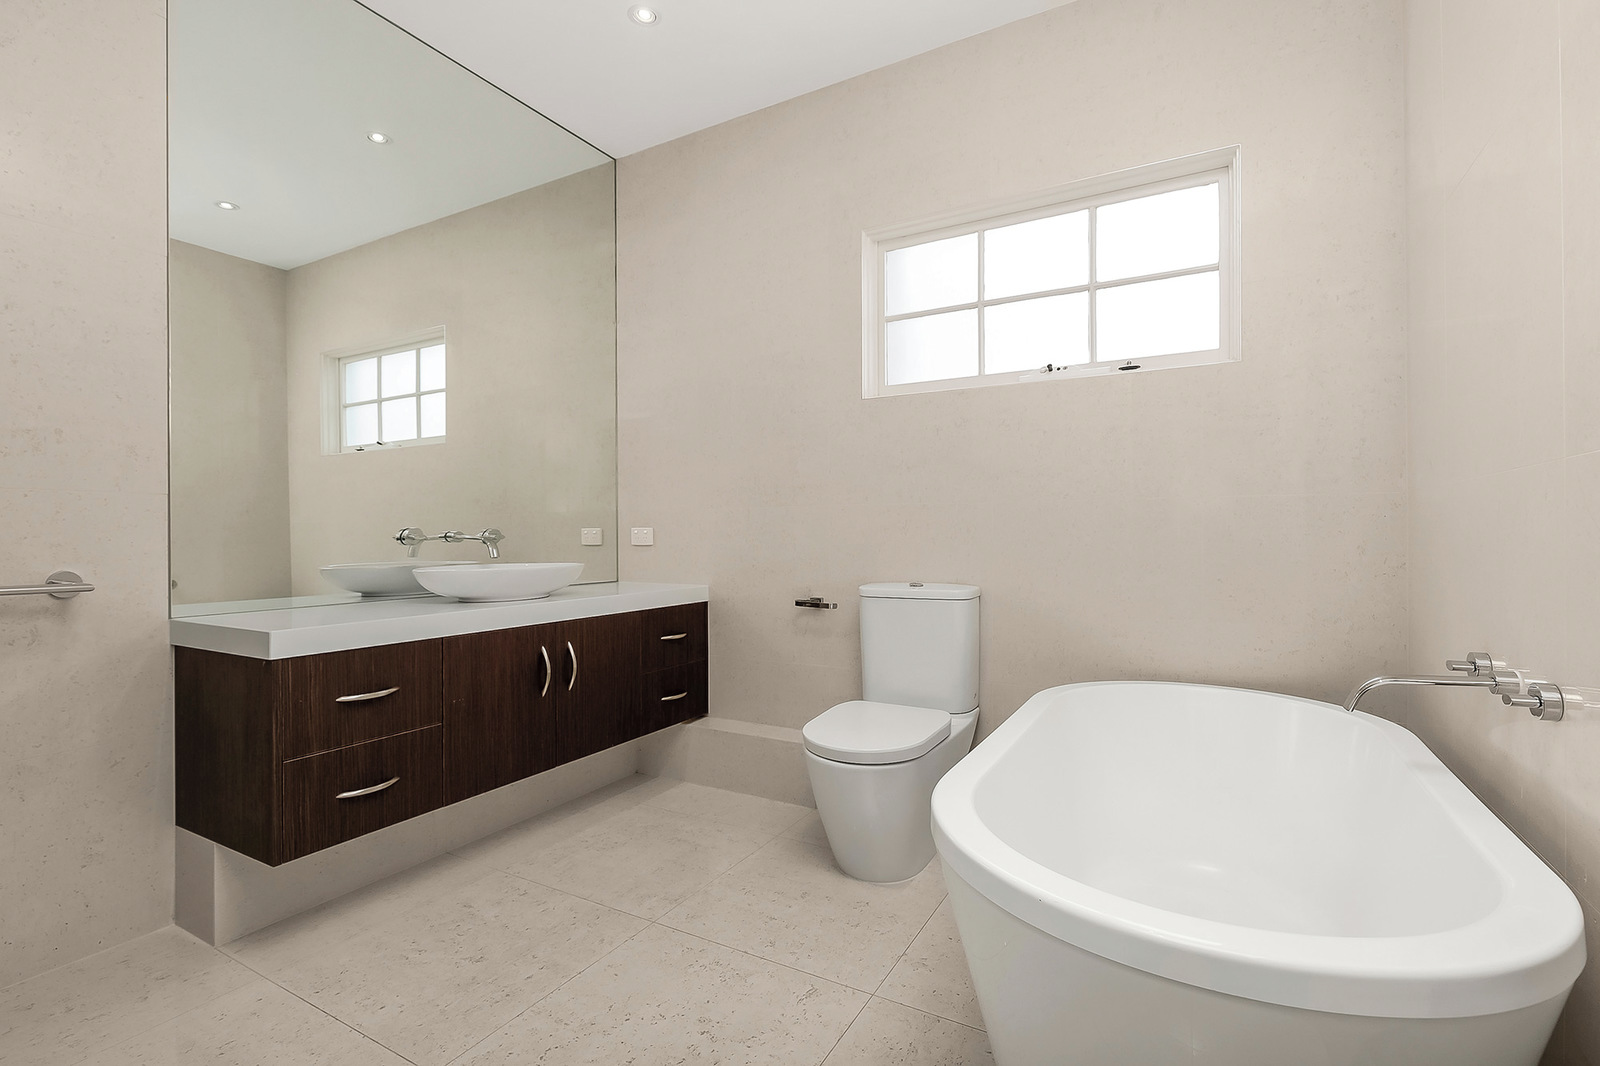 42 Marriage Road, Brighton East 3187 - Image 4